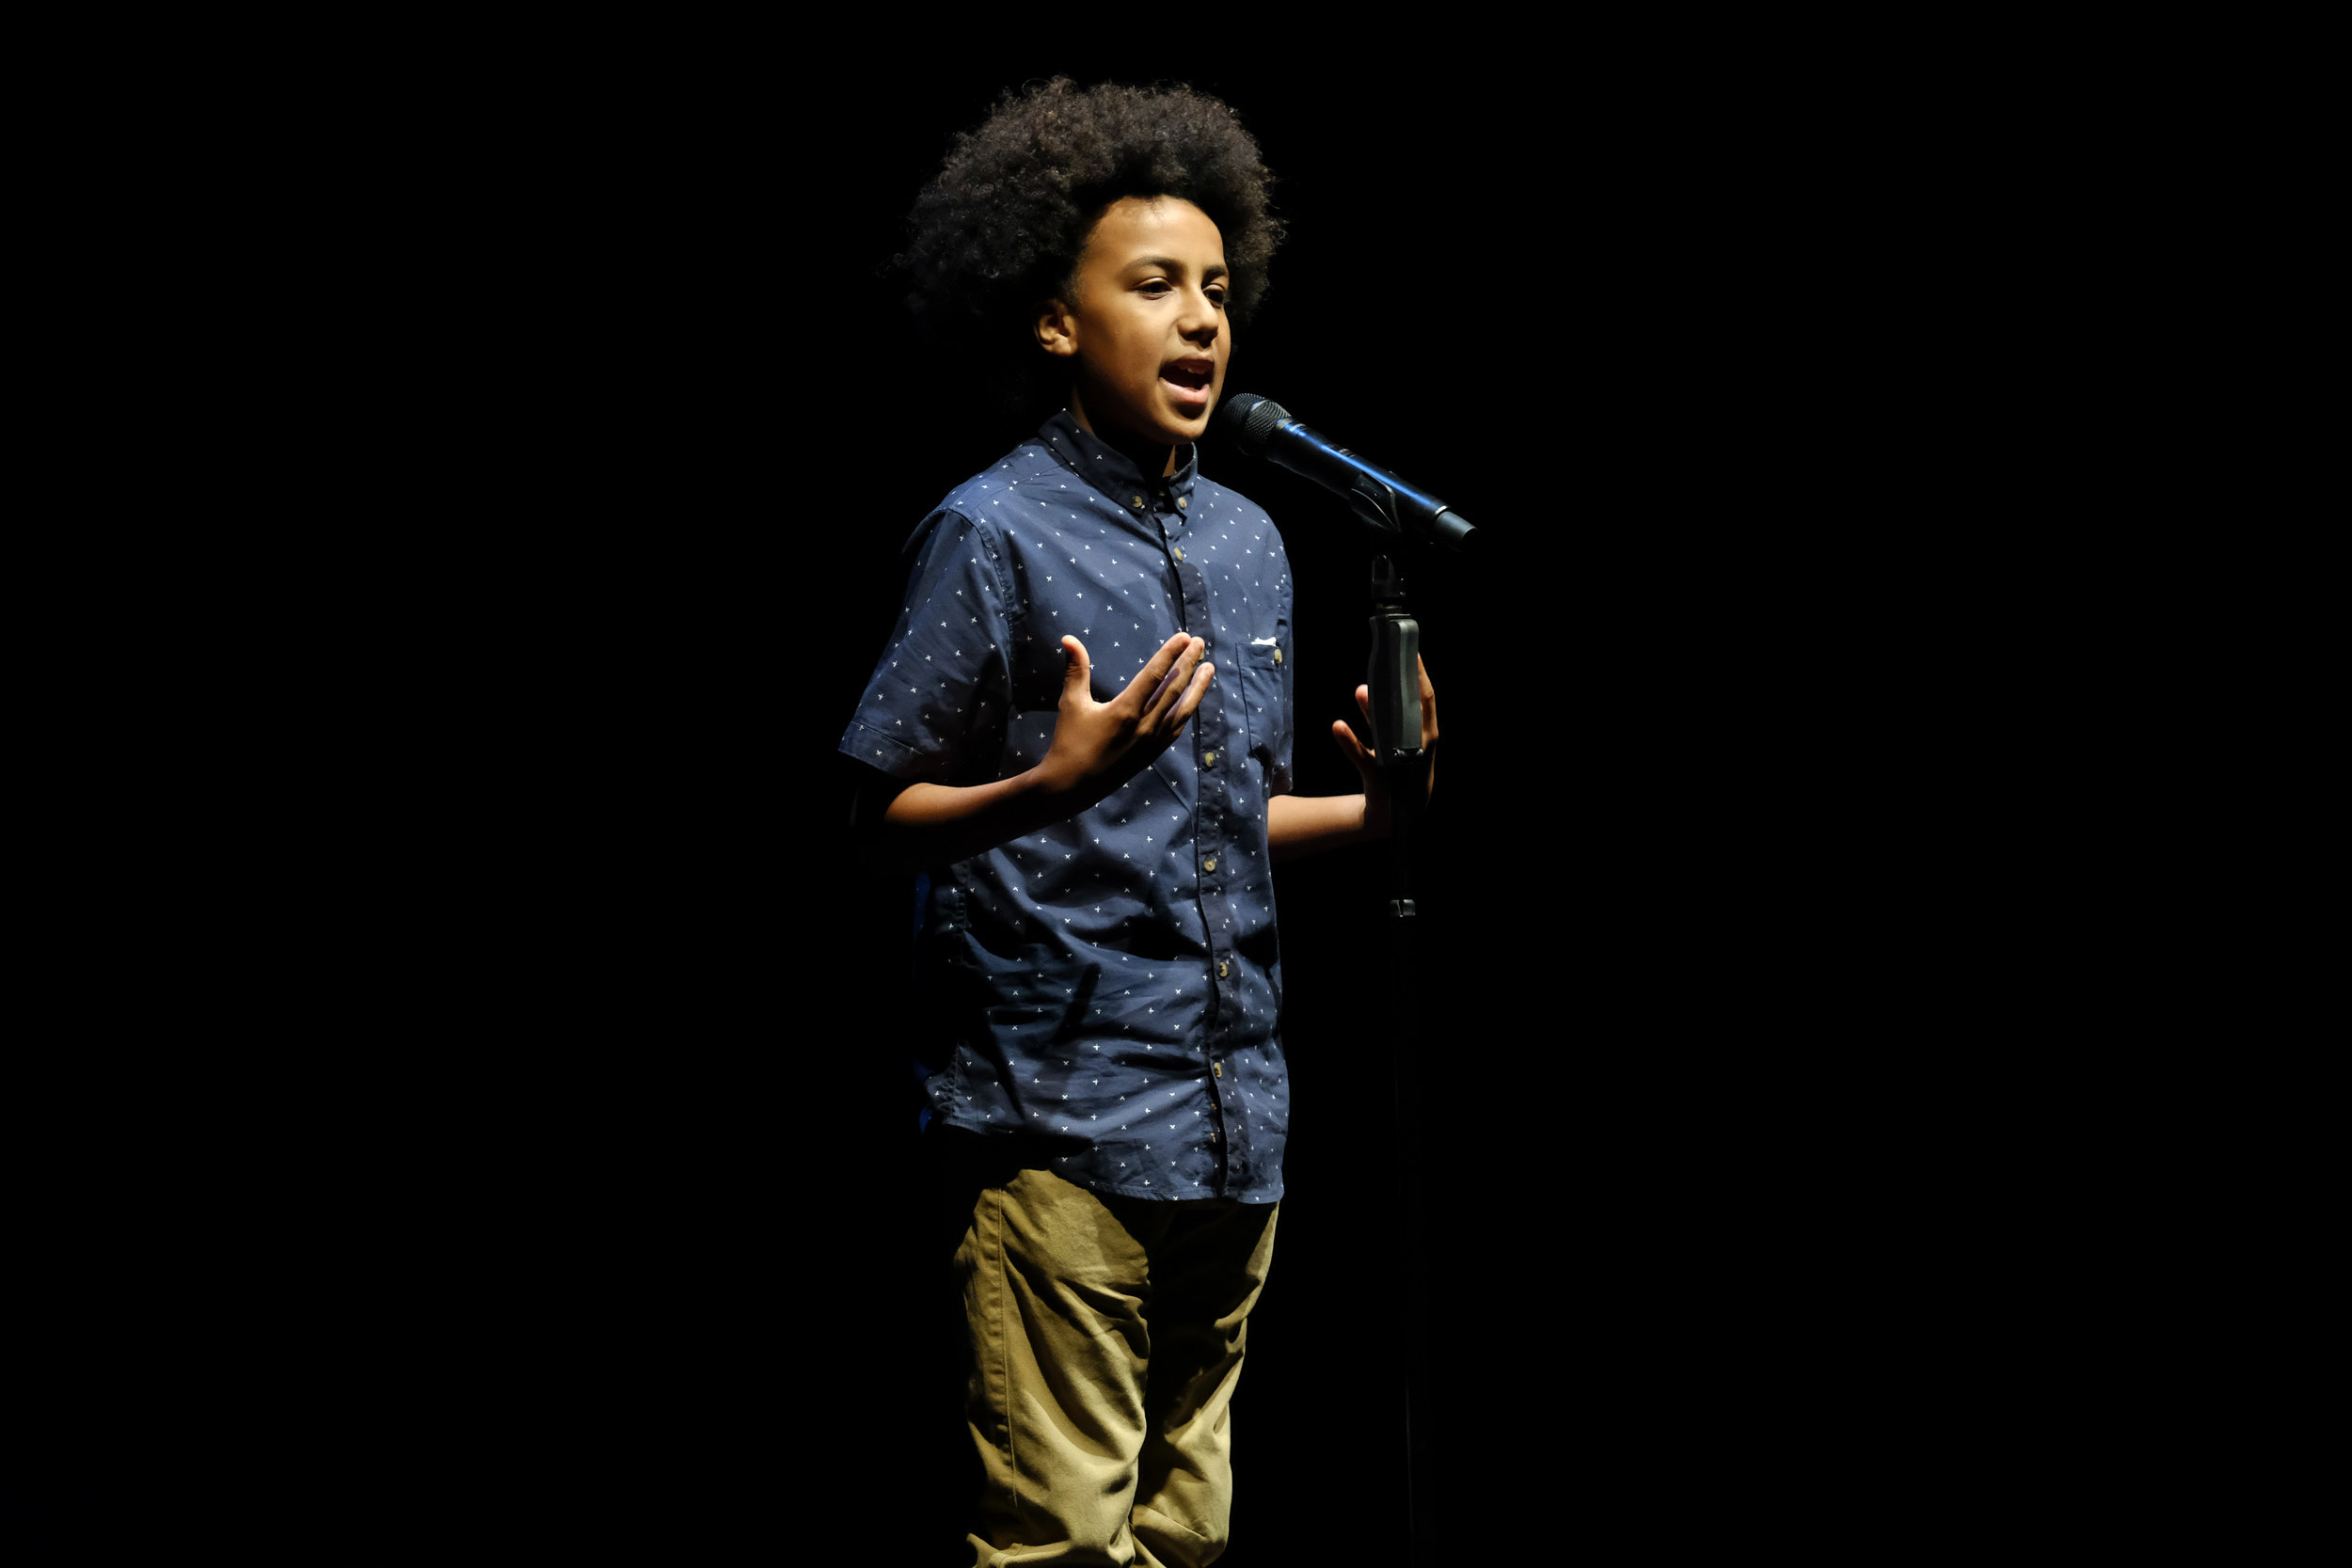 Solli - Raphael thrives on challenges such as raising awareness for important social and global issues and considers himself a budding humanitarian & an enthusiastic environmentalist.At just 13 years of age, Solli performed to an audience of over 5000 at the International Convention Centre Sydney as part of TEDxSydney 2018. He also performed at the 2018 Gold Coast Commonwealth Games to a live audience of 35,000.In 2017 Solli won the Australian Poetry Slam at the Sydney Opera House, holding the title for the youngest ever champion! A video of the winning performance went viral with 3.6 million views.Recently signed with Penguin Random House Australia, Solli's debut book Limelight includes strategies on developing writing ideas, writing traditional and slam poetry along with techniques on how to perform on any stage. Limelight offers motivation, hope and inspiration to youth and people of all ages.See Solli's encore performance at this years' Australian Poetry Slam National Final event.